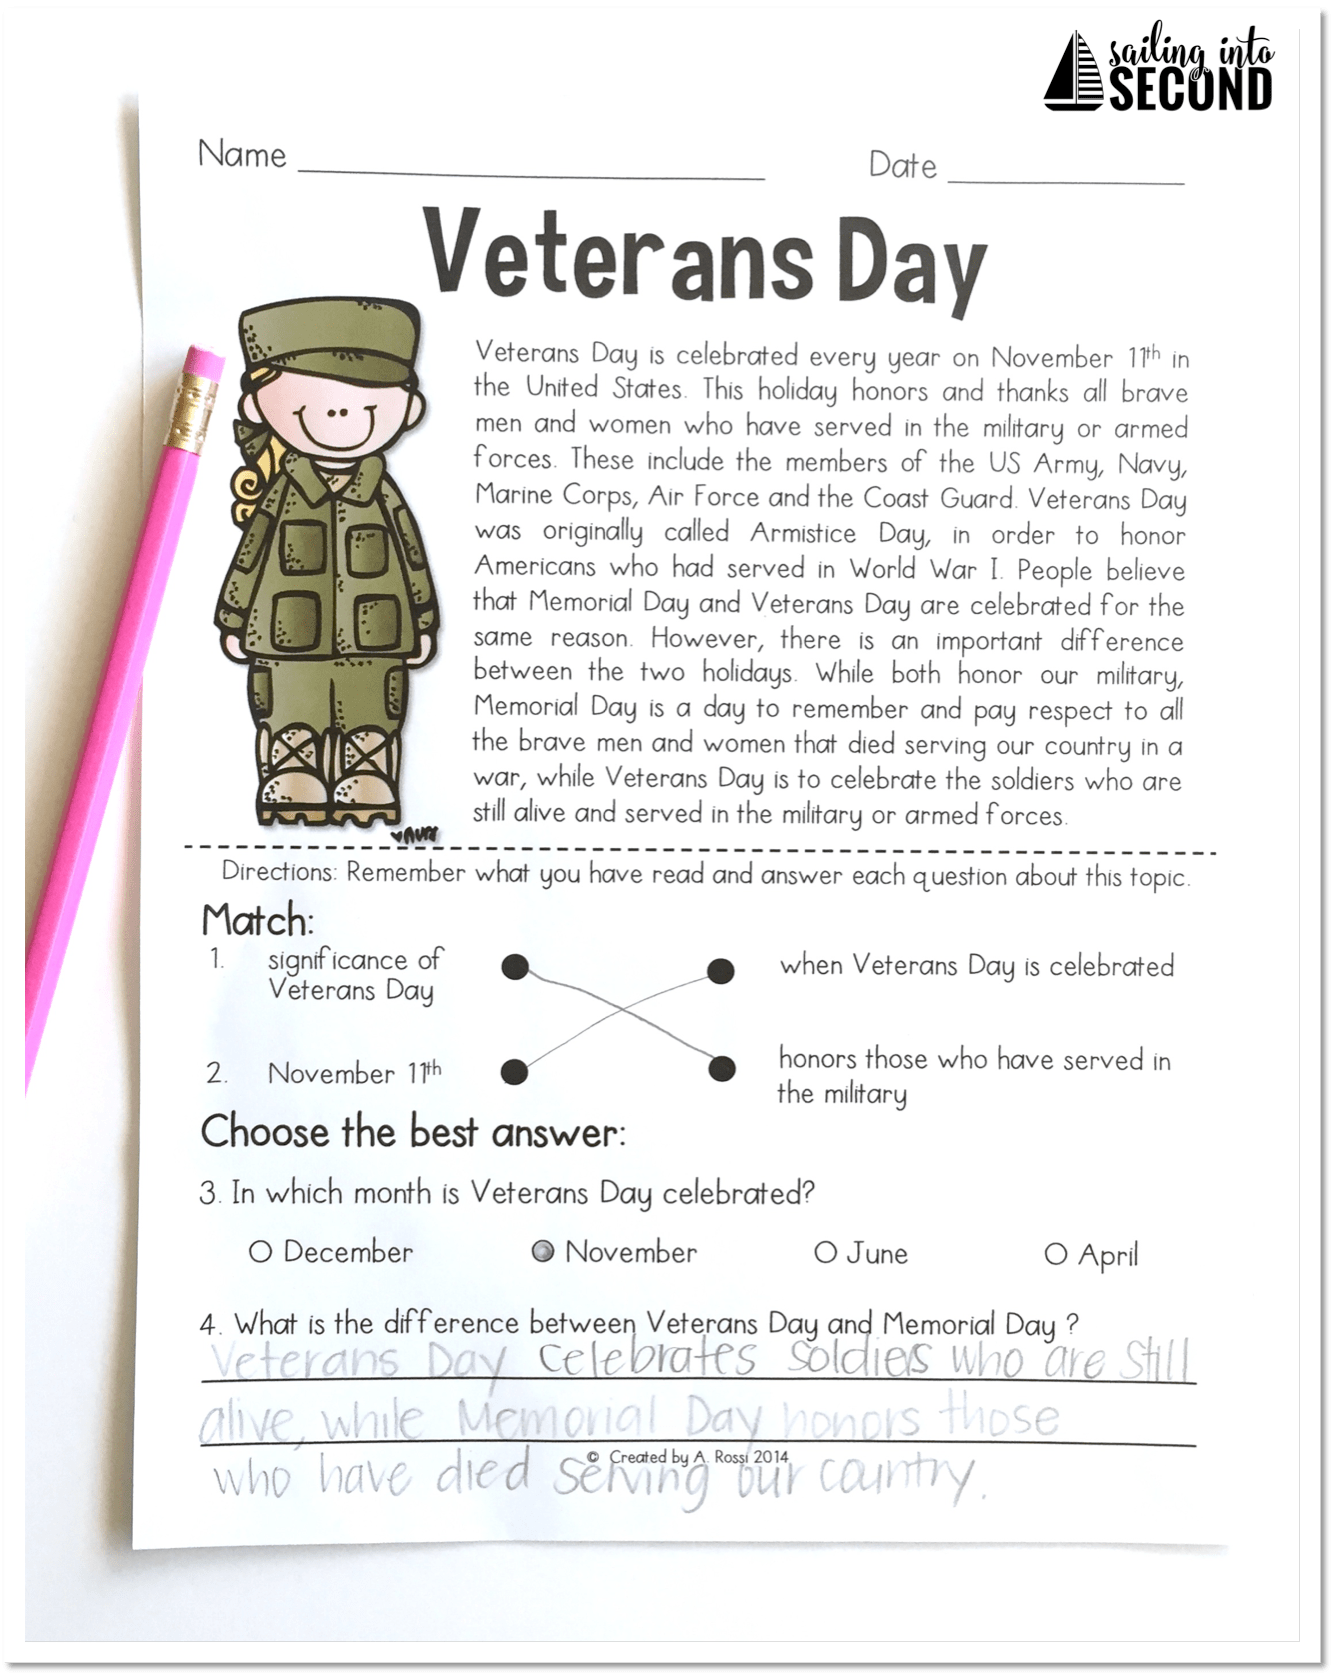 Veterans Day Activities From Sailing Into Second